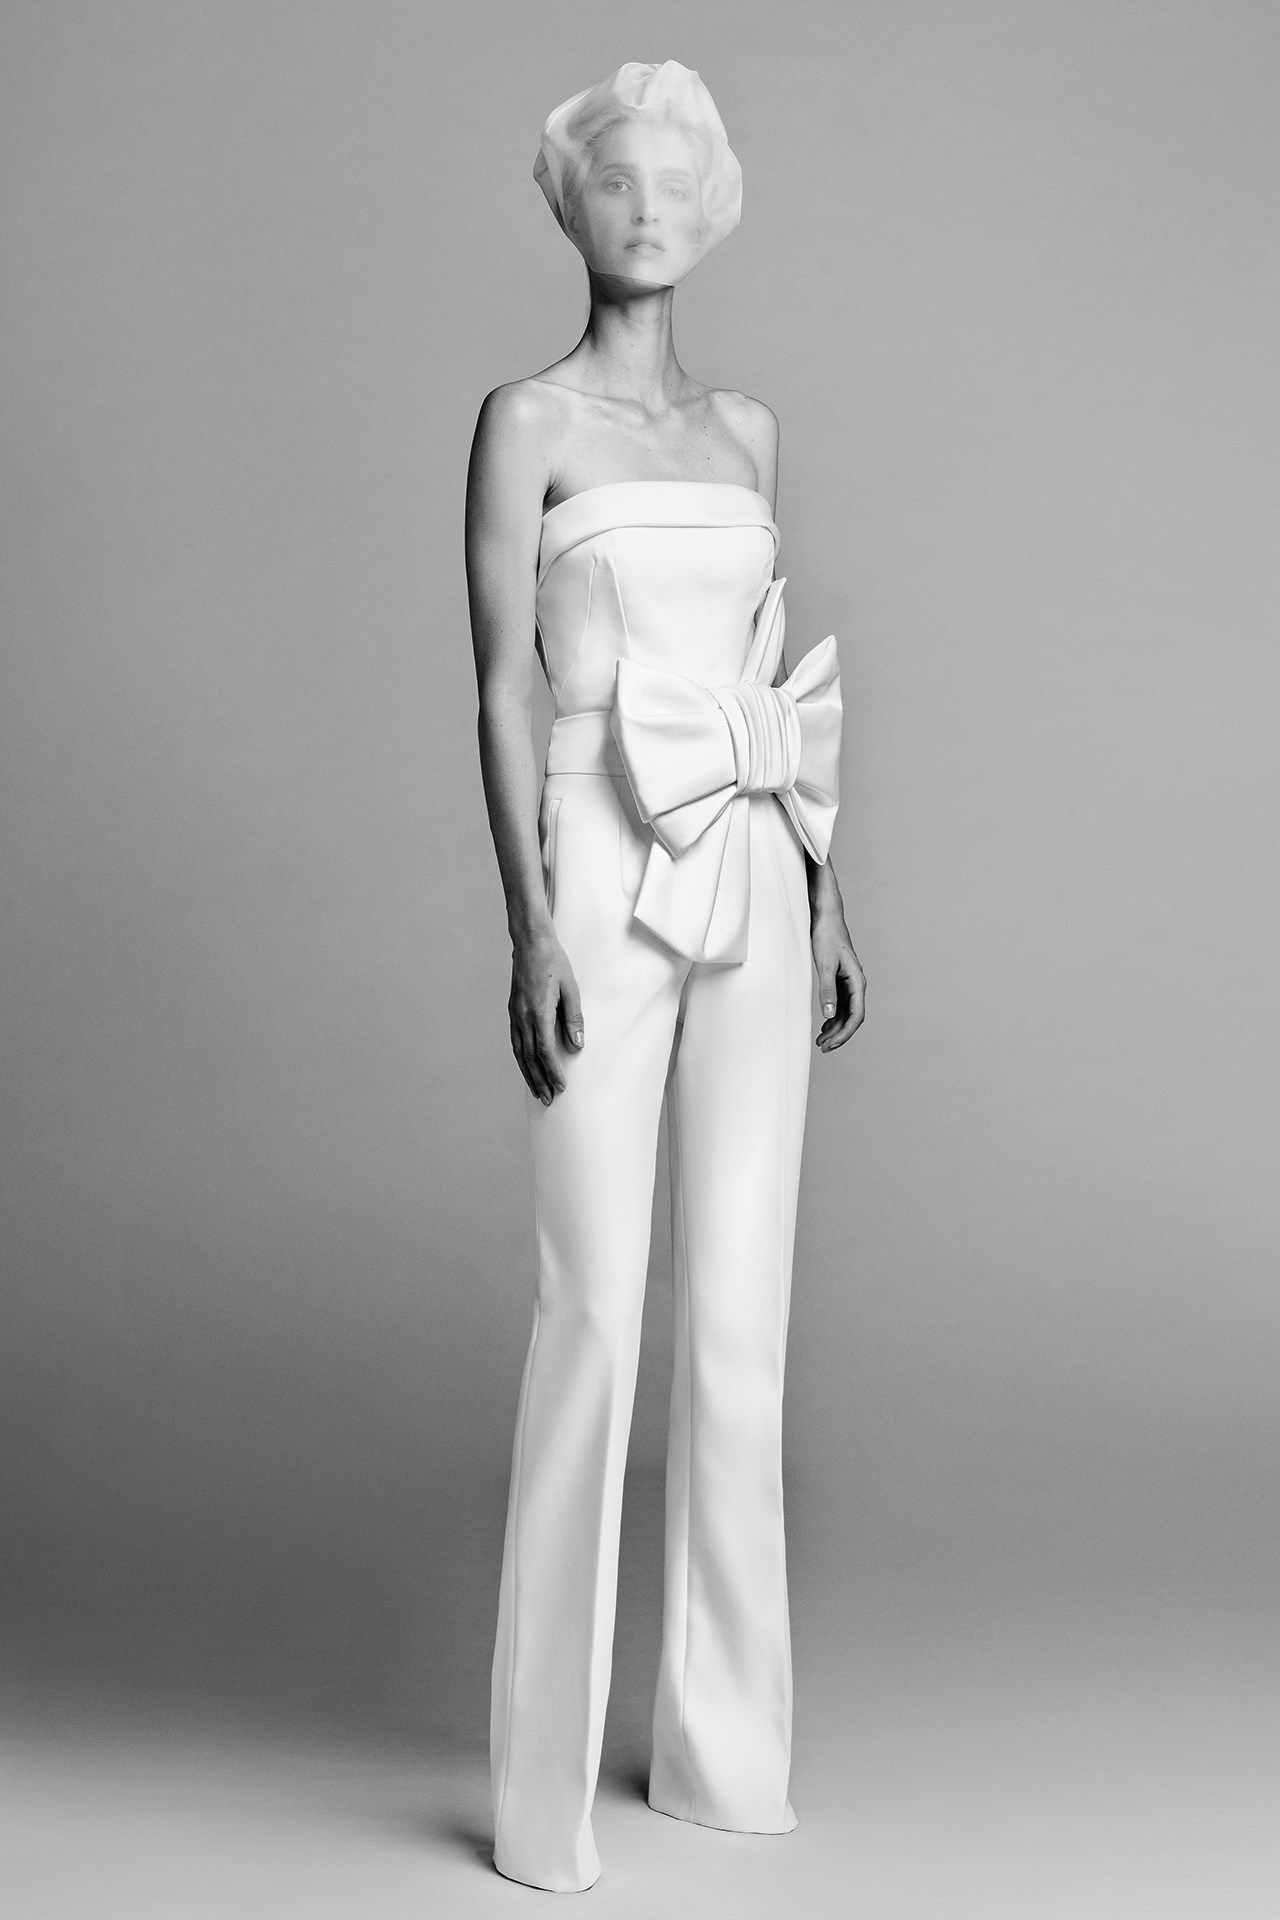 2b3b18e7be8 Wedding Jumpsuits And Trousers For The Fashion-Forward Bride ...